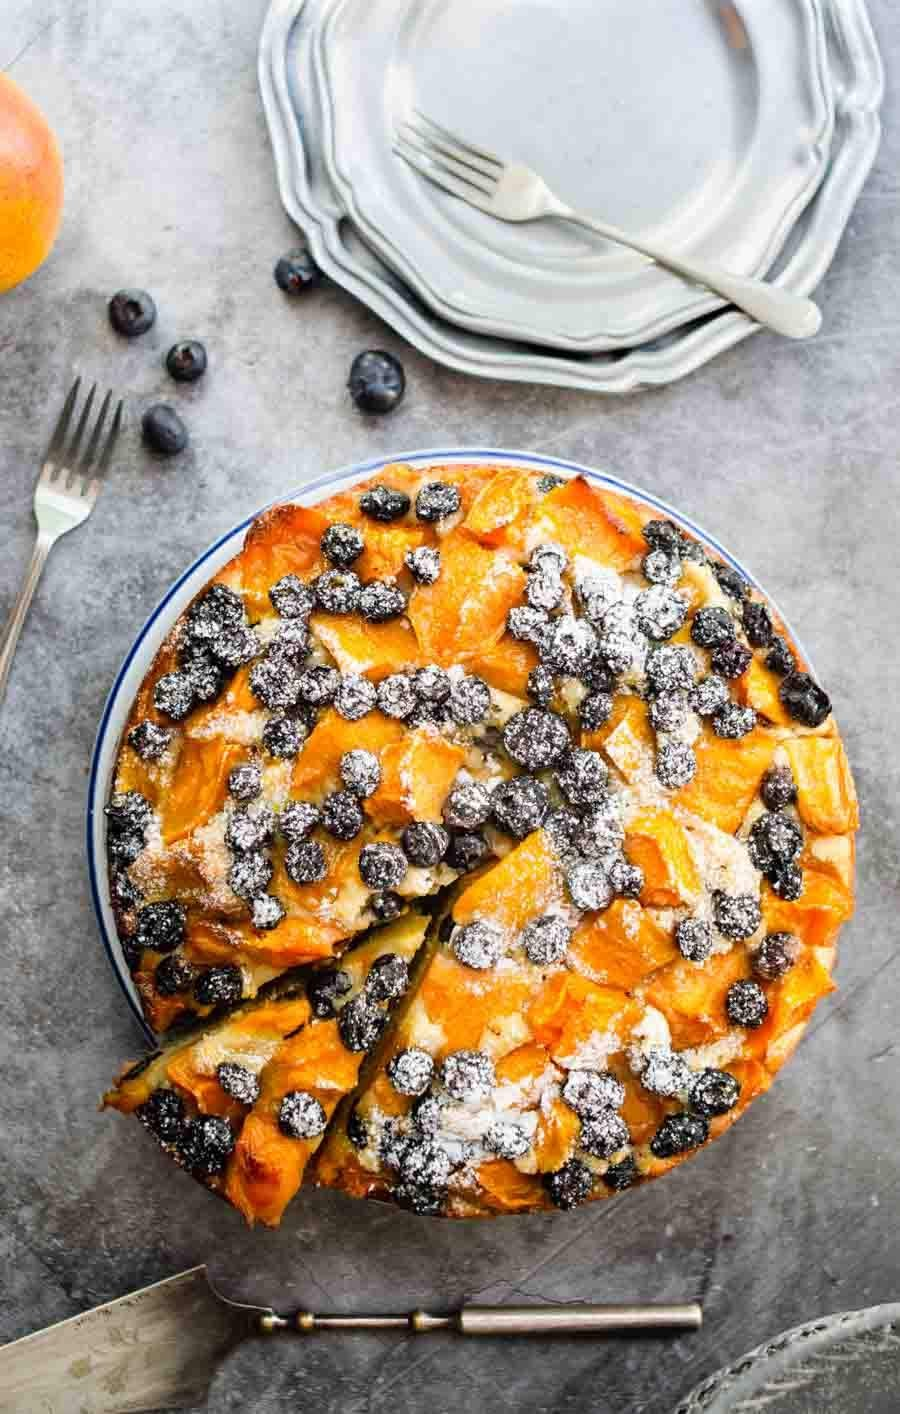 Blueberries and mango pastry cake photo